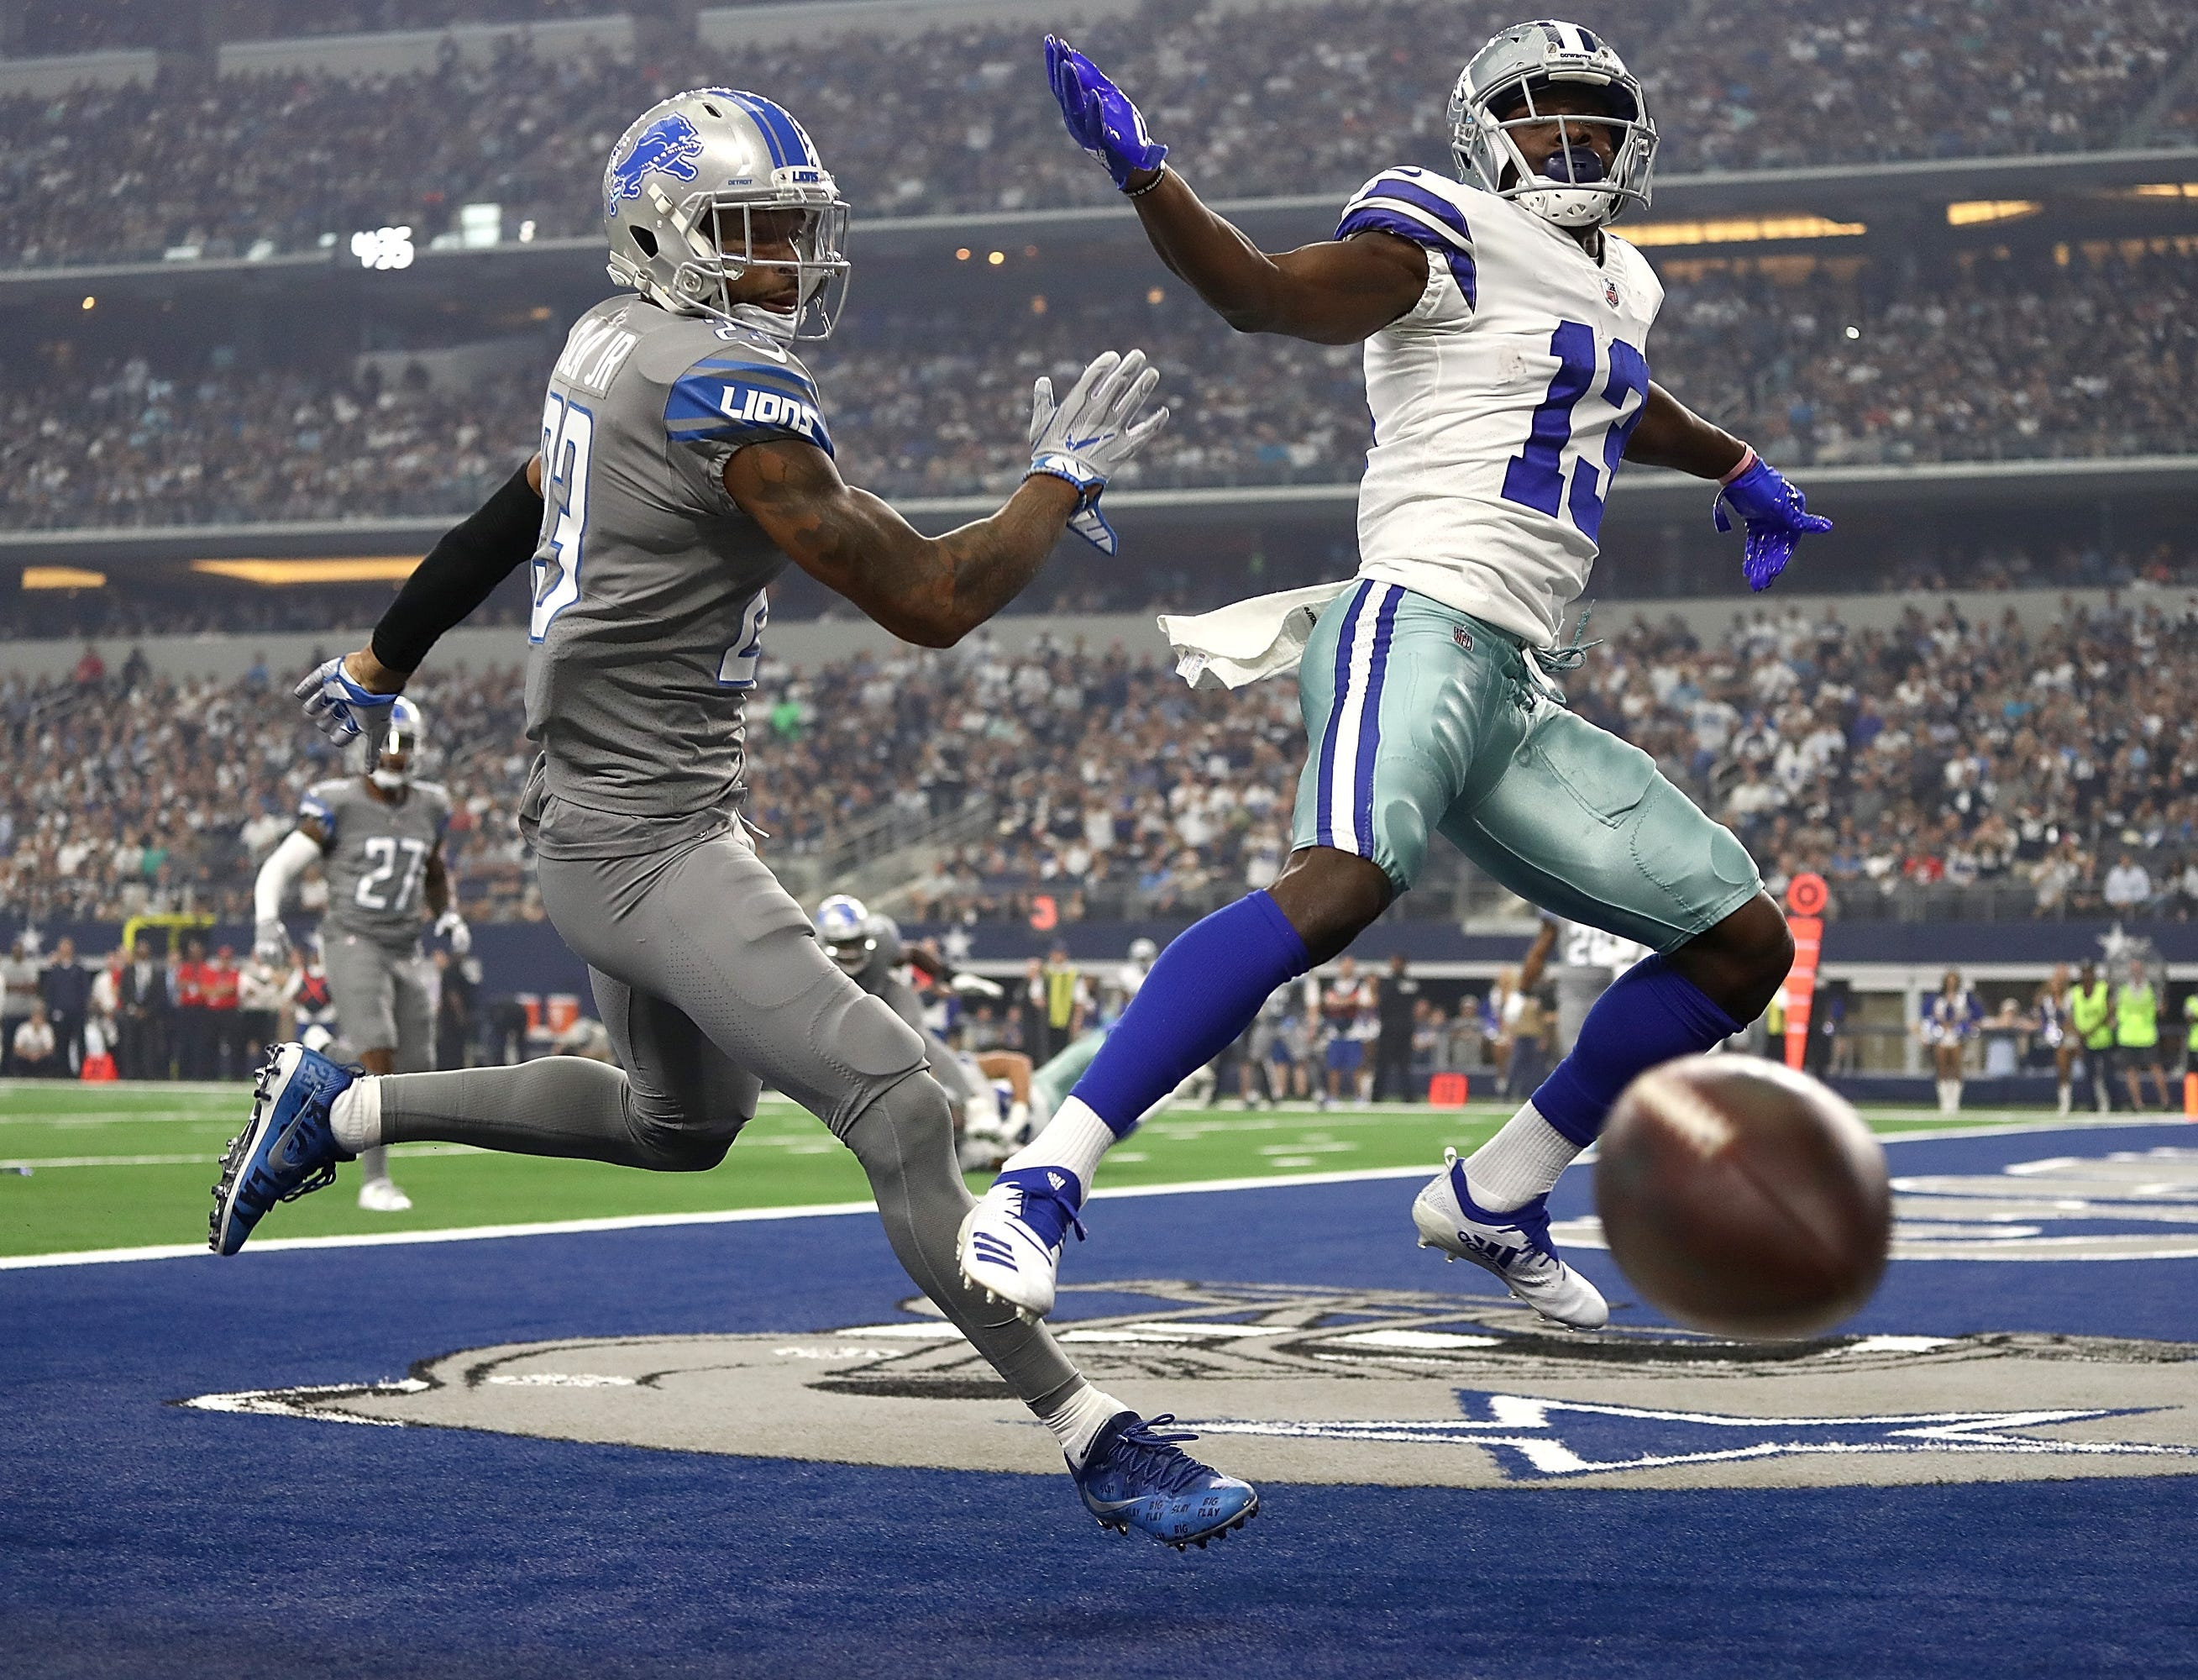 Cowboys wide receiver Michael Gallup goes up for a pass against Lions cornerback Darius Slay in the first quarter in Arlington, Texas, Sunday, Sept. 30, 2018.